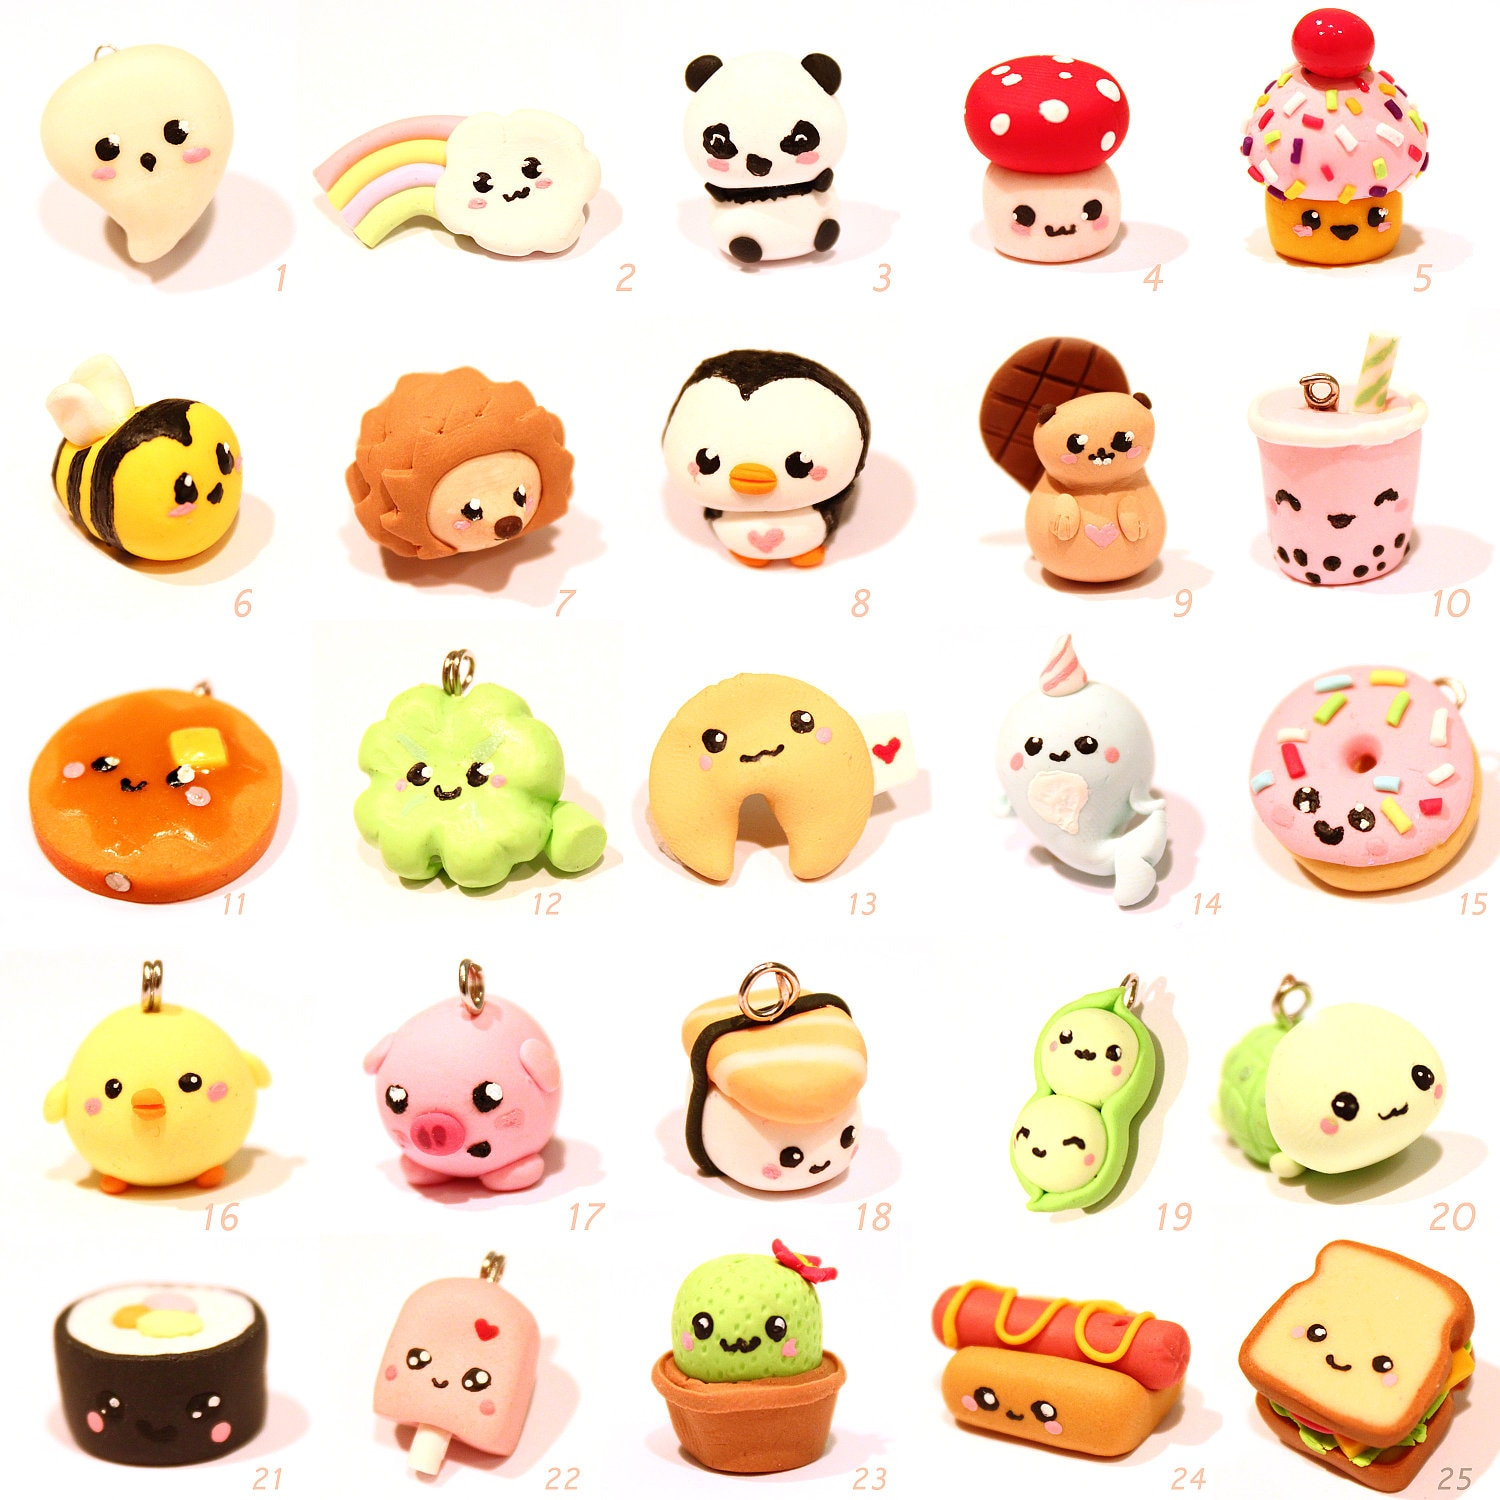 Kawaii charm from kawaii friday by minimums on etsy - Etsy bilder ...